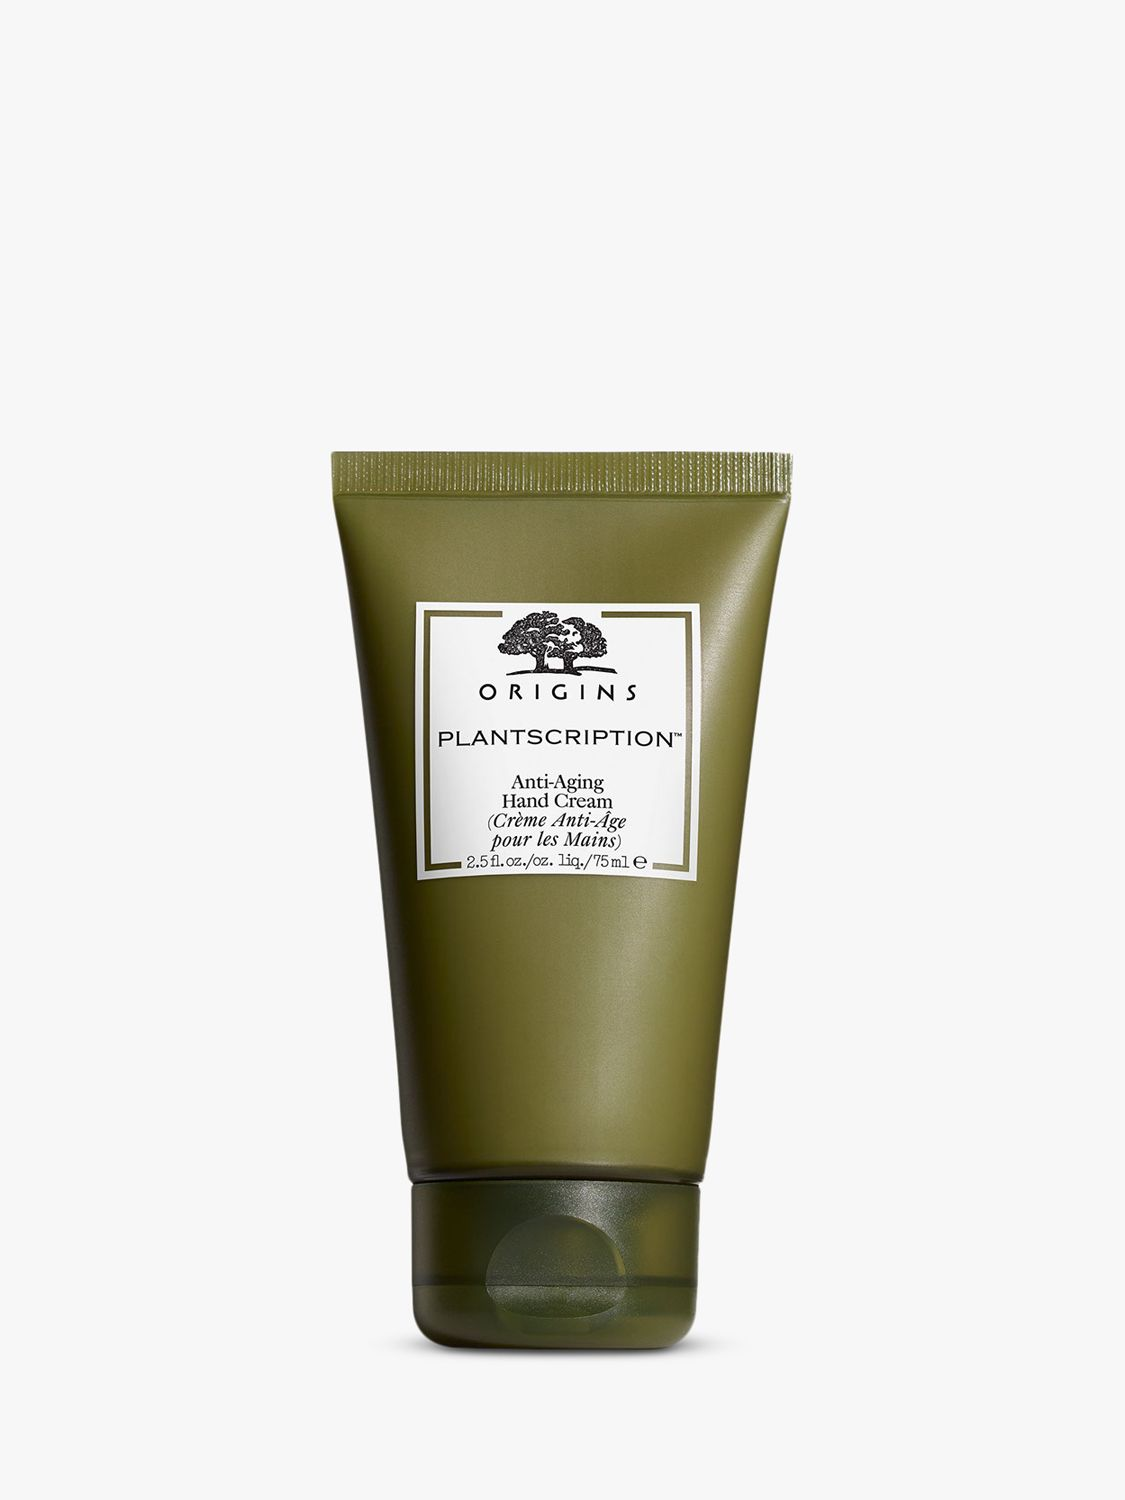 Origins Origins Plantscription™ Anti-Ageing Hand Cream, 75ml